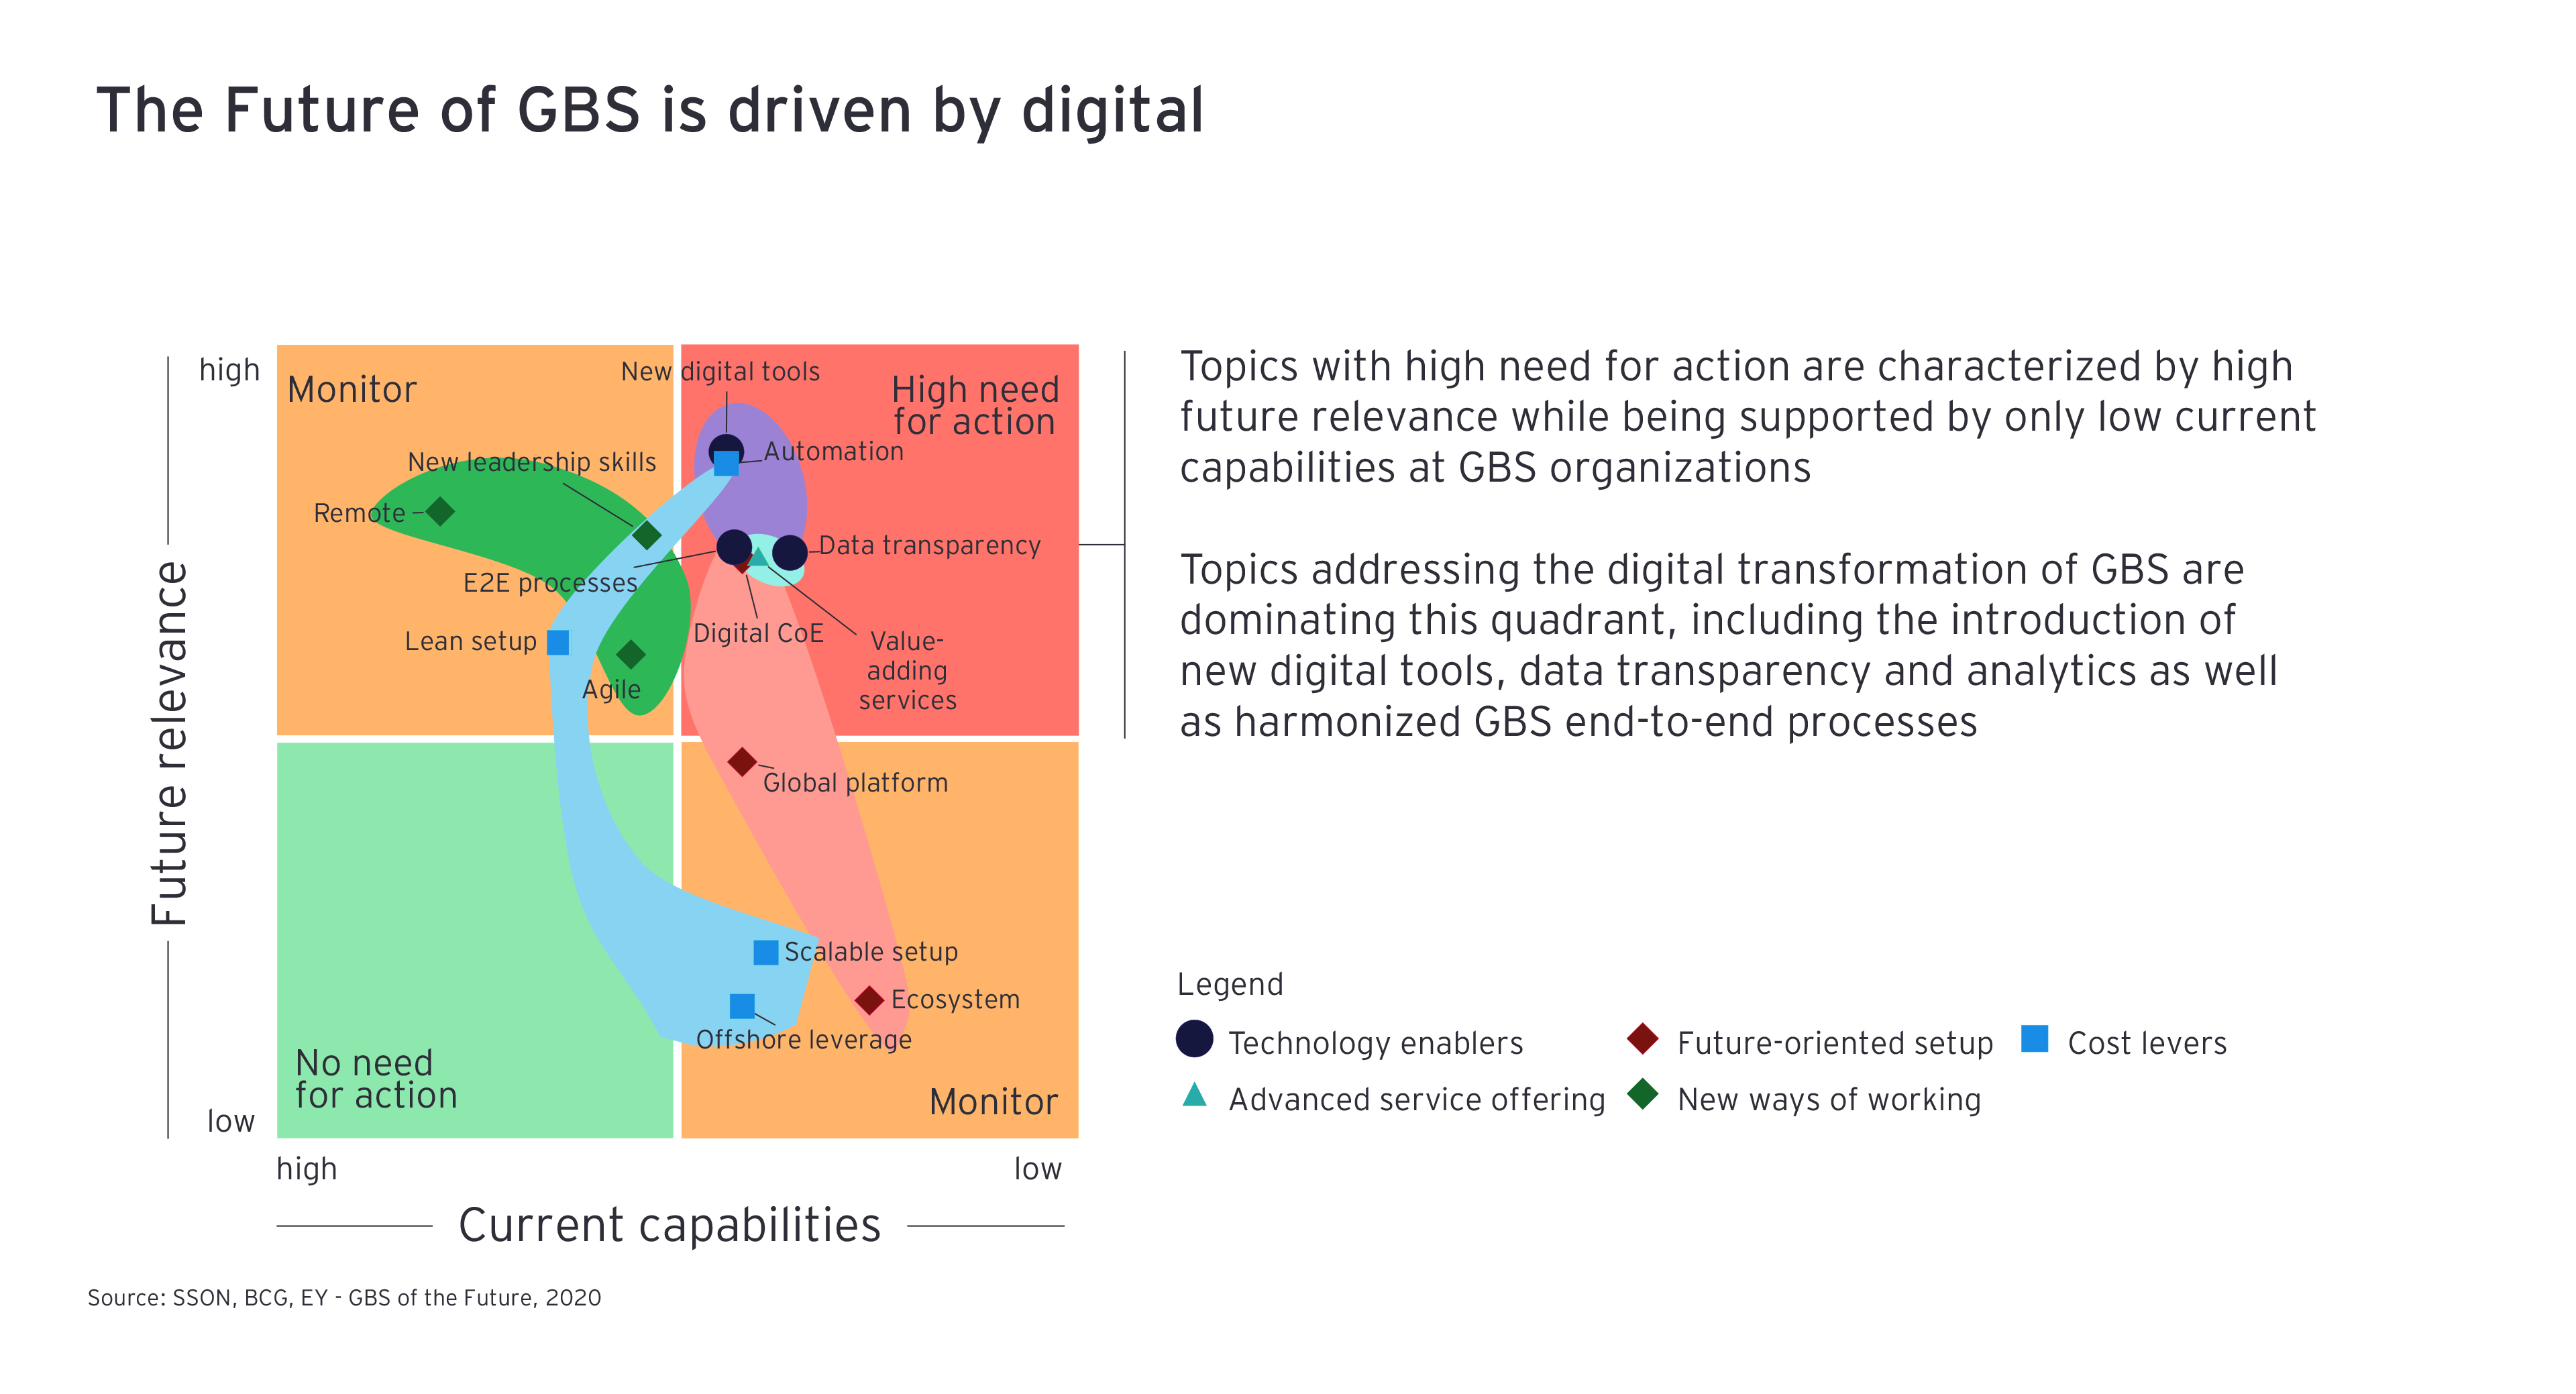 The future of GDS is driven by digital